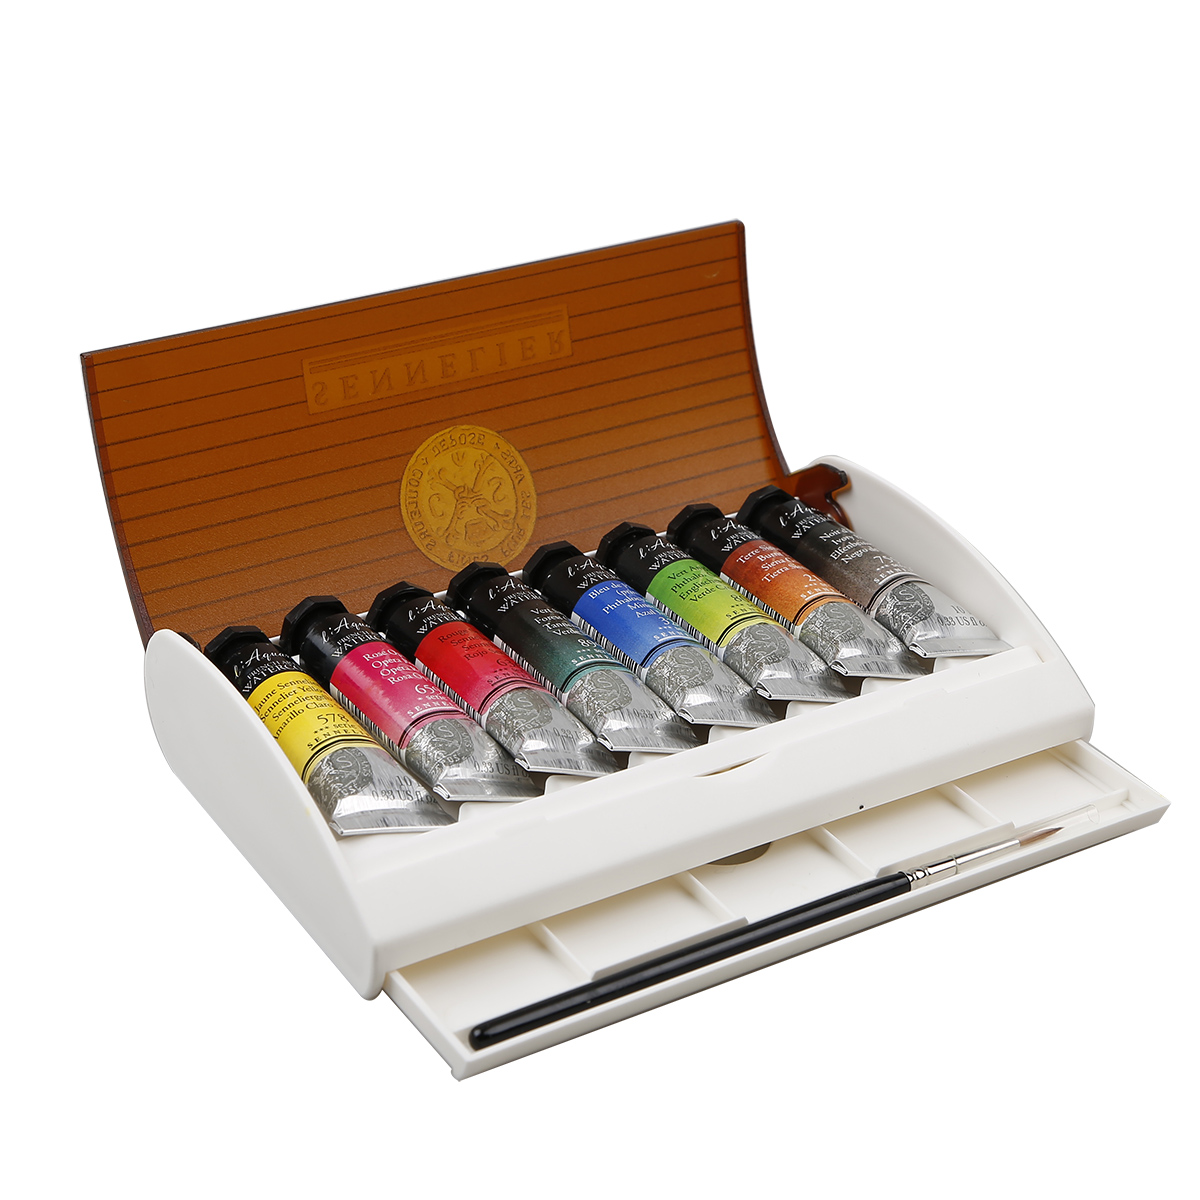 SENNELIER Top Artist 8 Colors 10ML Honey Watercolor Paints Suits Tinting Iron Box Advanced Watercolor PigmentsSENNELIER Top Artist 8 Colors 10ML Honey Watercolor Paints Suits Tinting Iron Box Advanced Watercolor Pigments